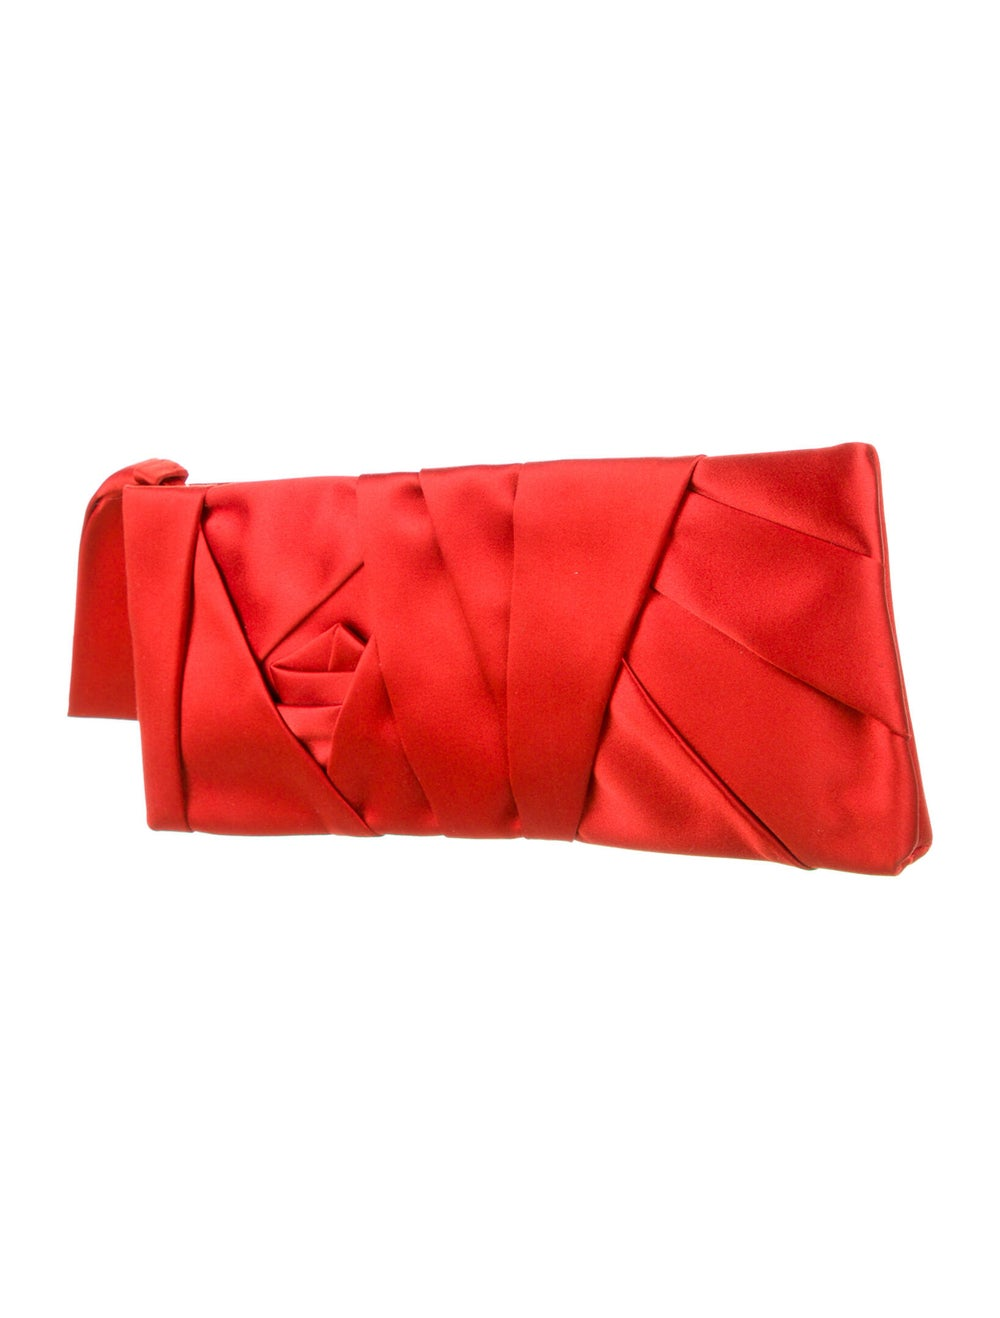 Valentino Pleated Satin Clutch Red - image 3